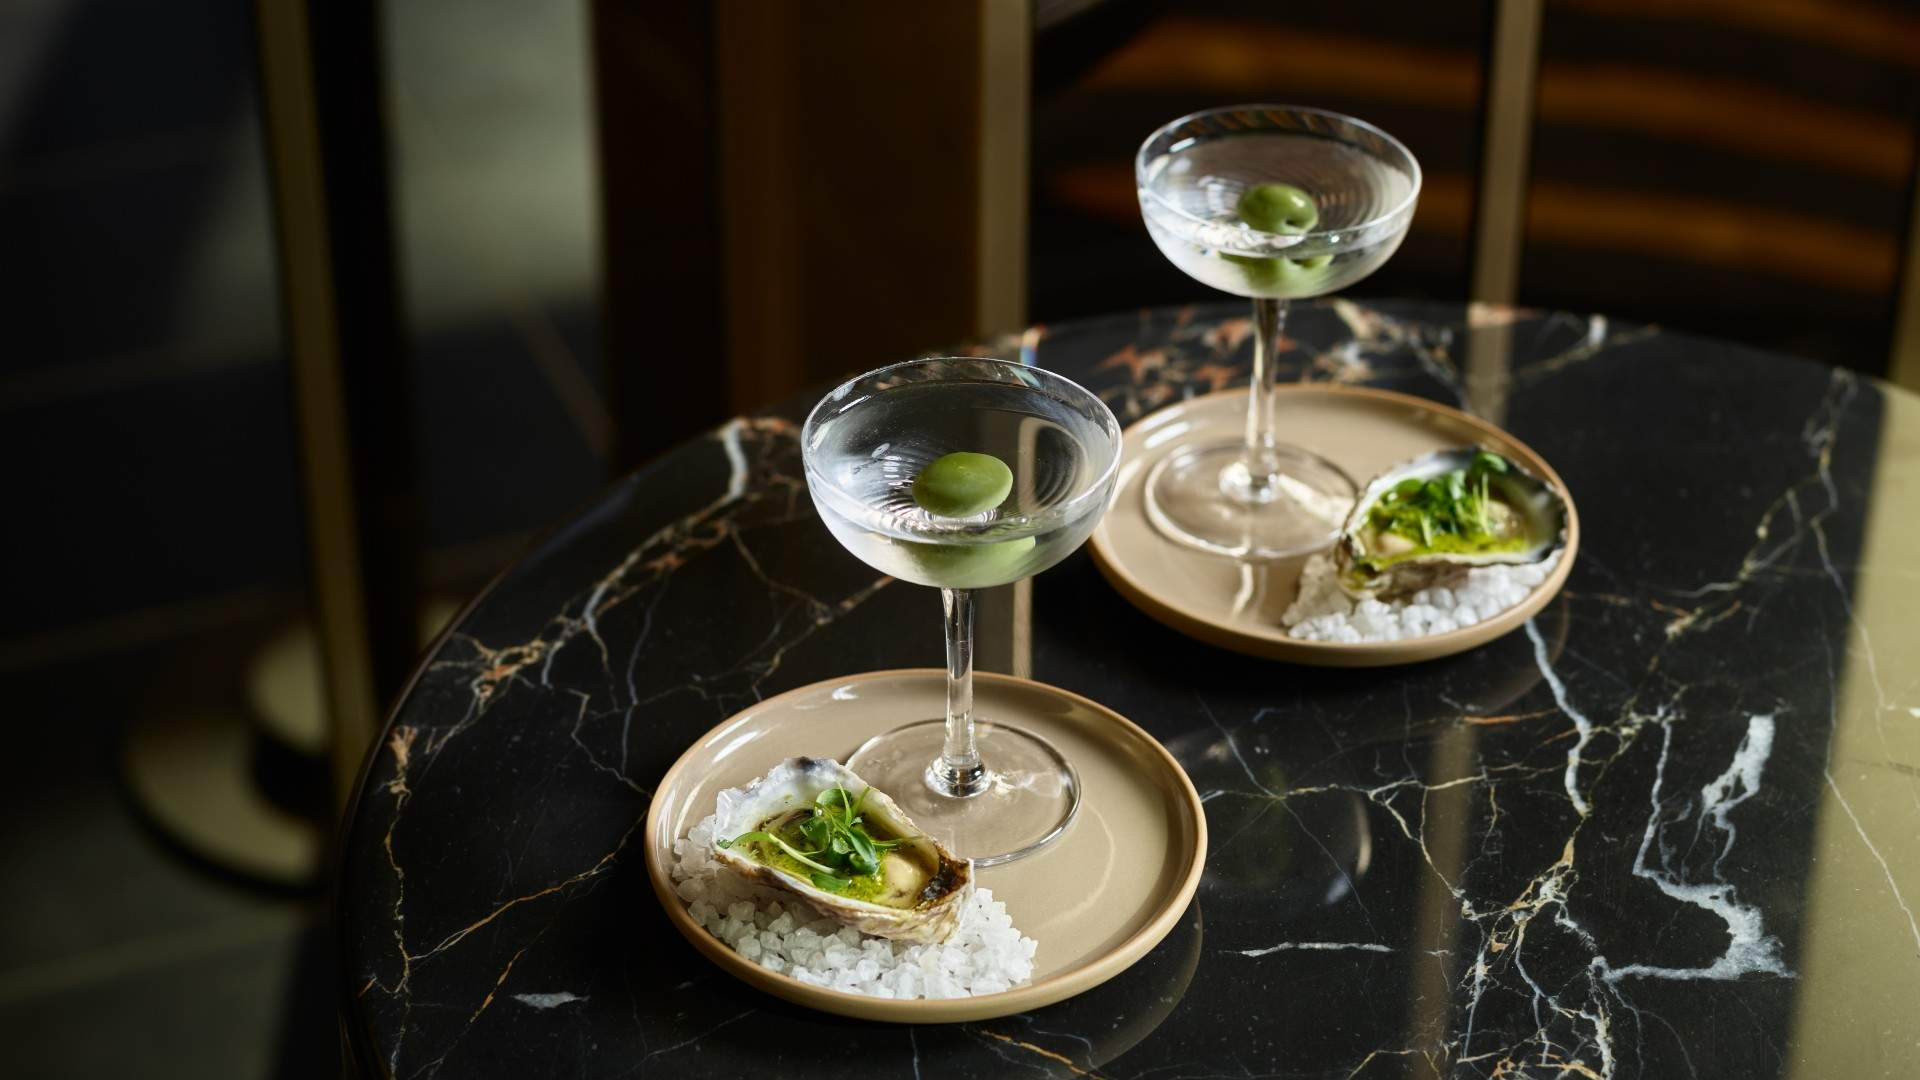 Dean & Nancy On 22 Is the New Sky-High Cocktail Bar from the Team Behind Maybe Sammy